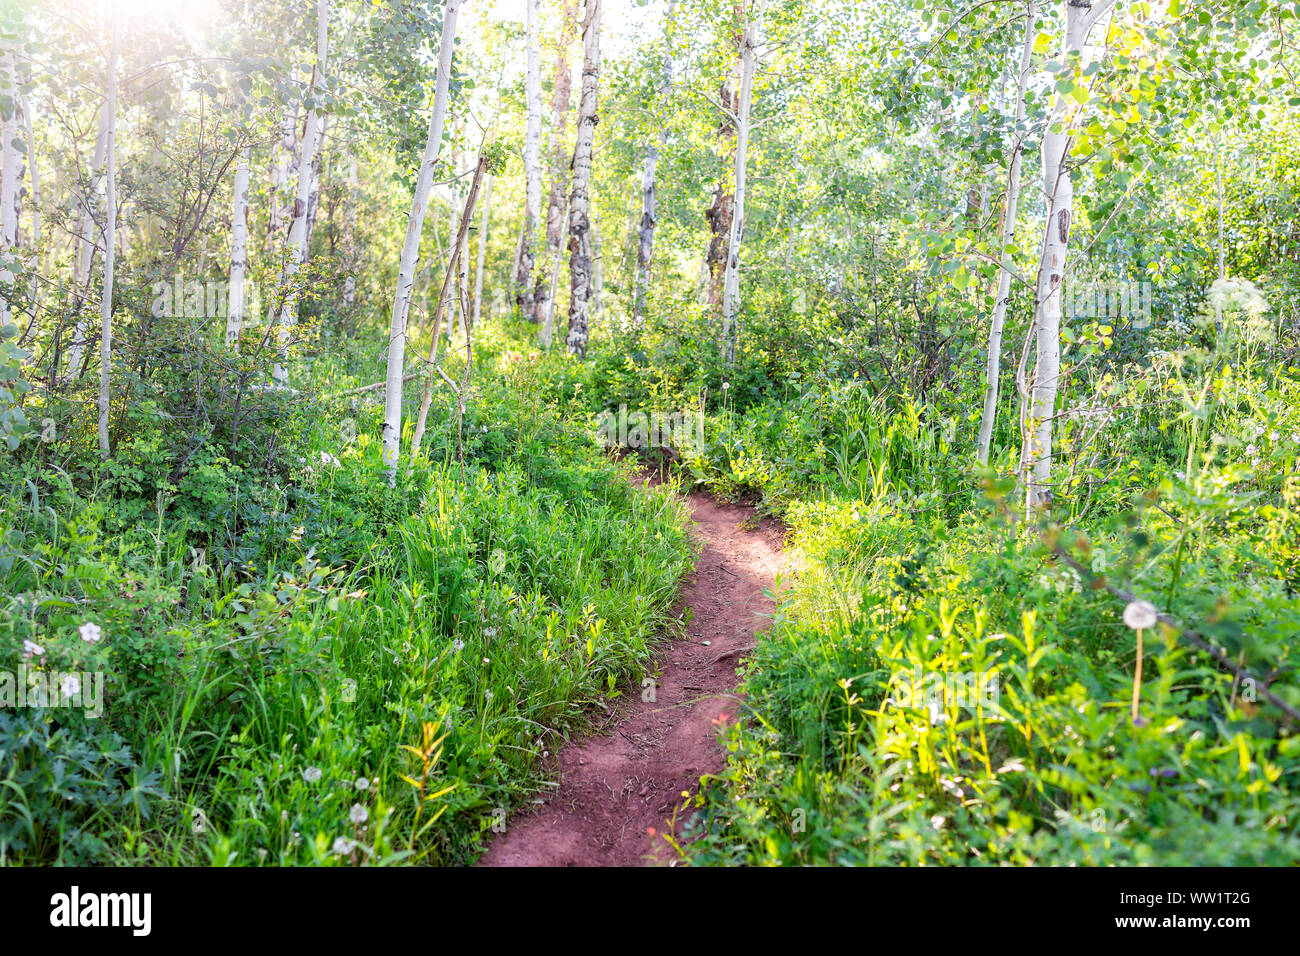 Forest sunlight on Sunnyside Trail in Aspen, Colorado in Woody Creek neighborhood in early 2019 summer with wildflowers and dirt road path Stock Photo